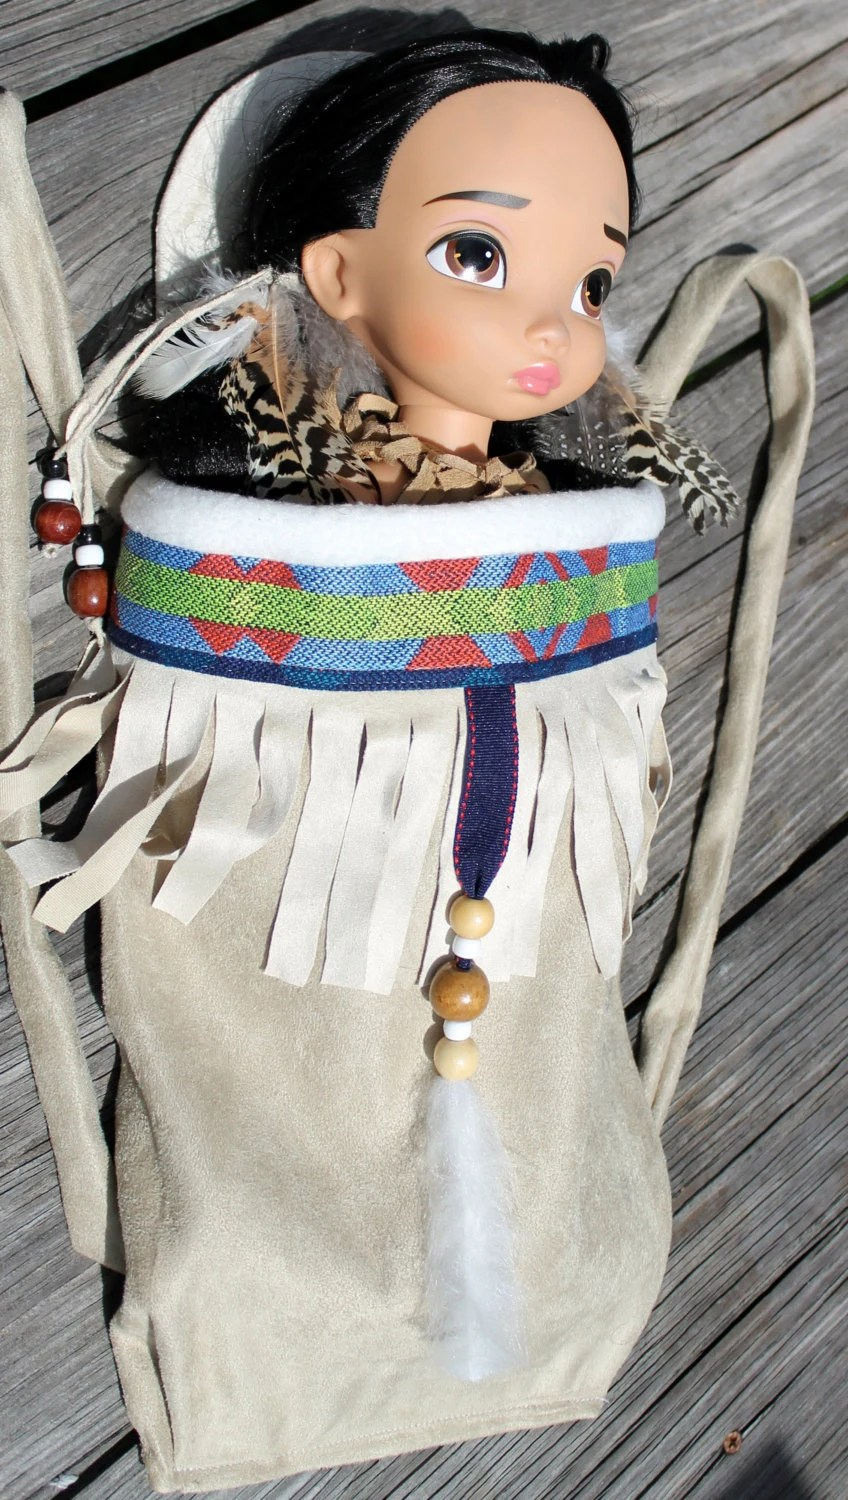 Le Meilleur Native American Girl Indian Papoose Baby Doll Carrier Fits 18 Ce Mois Ci